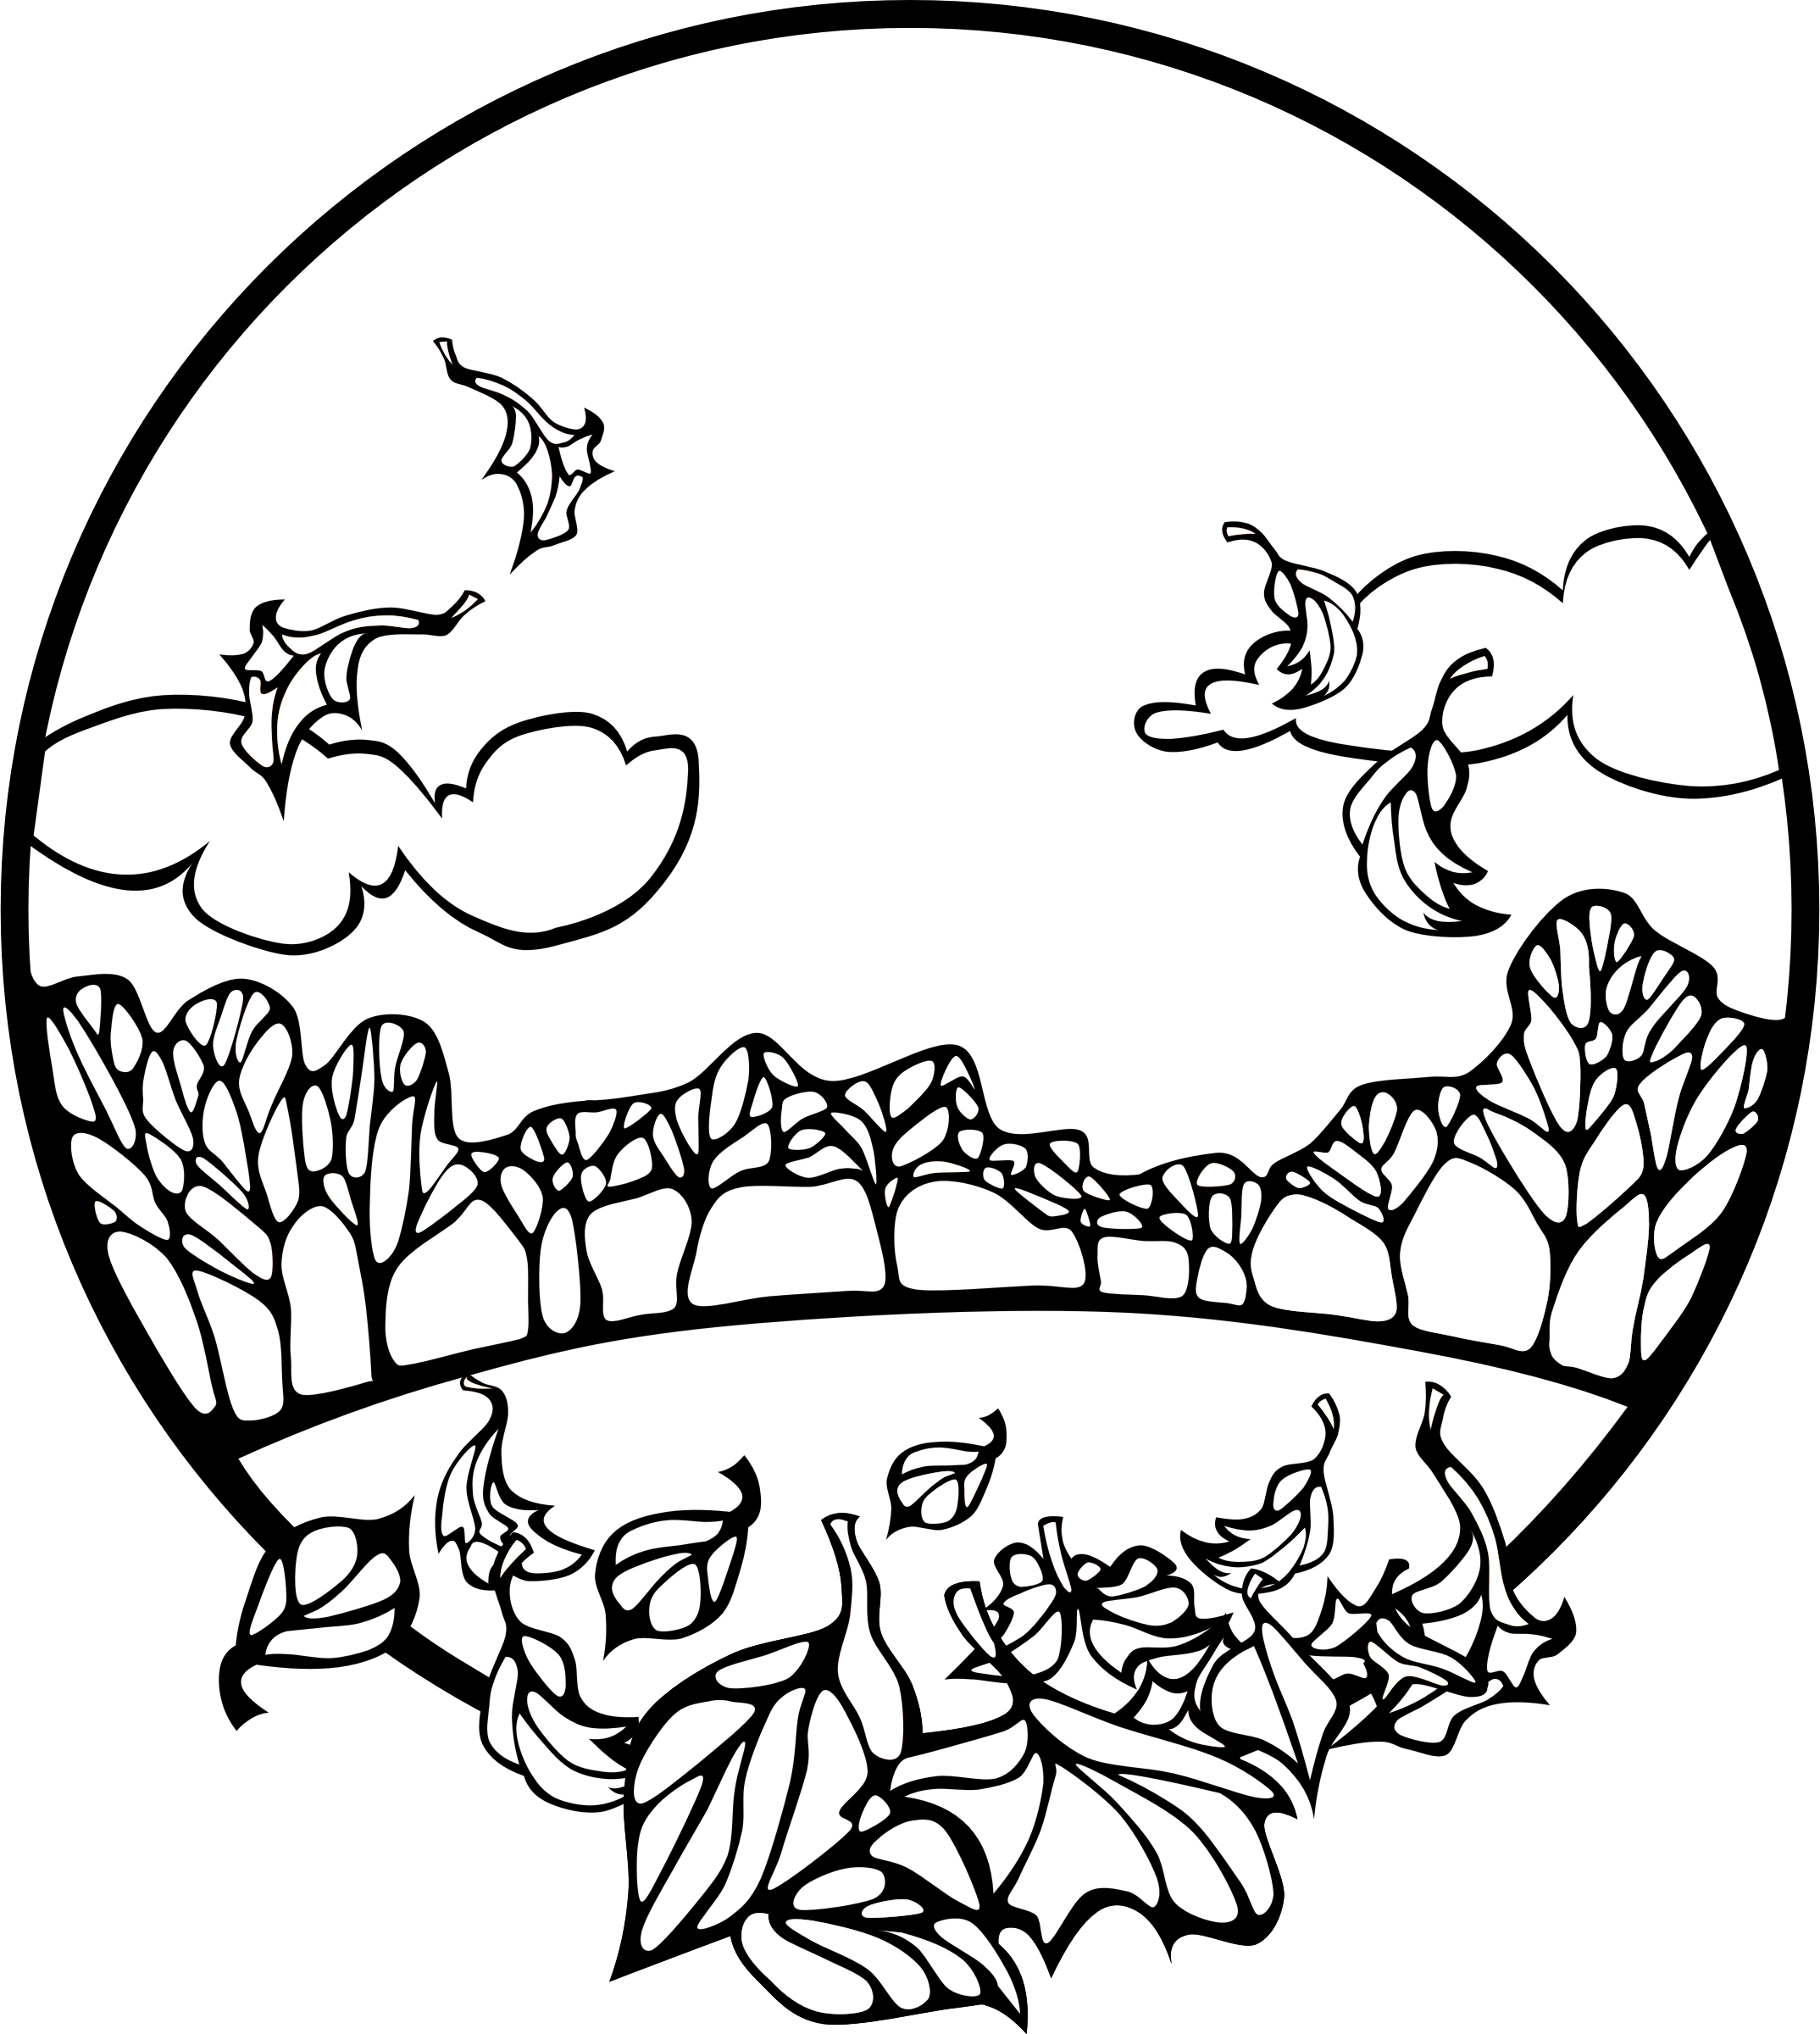 Scene coloring page big. Clipart fall black and white